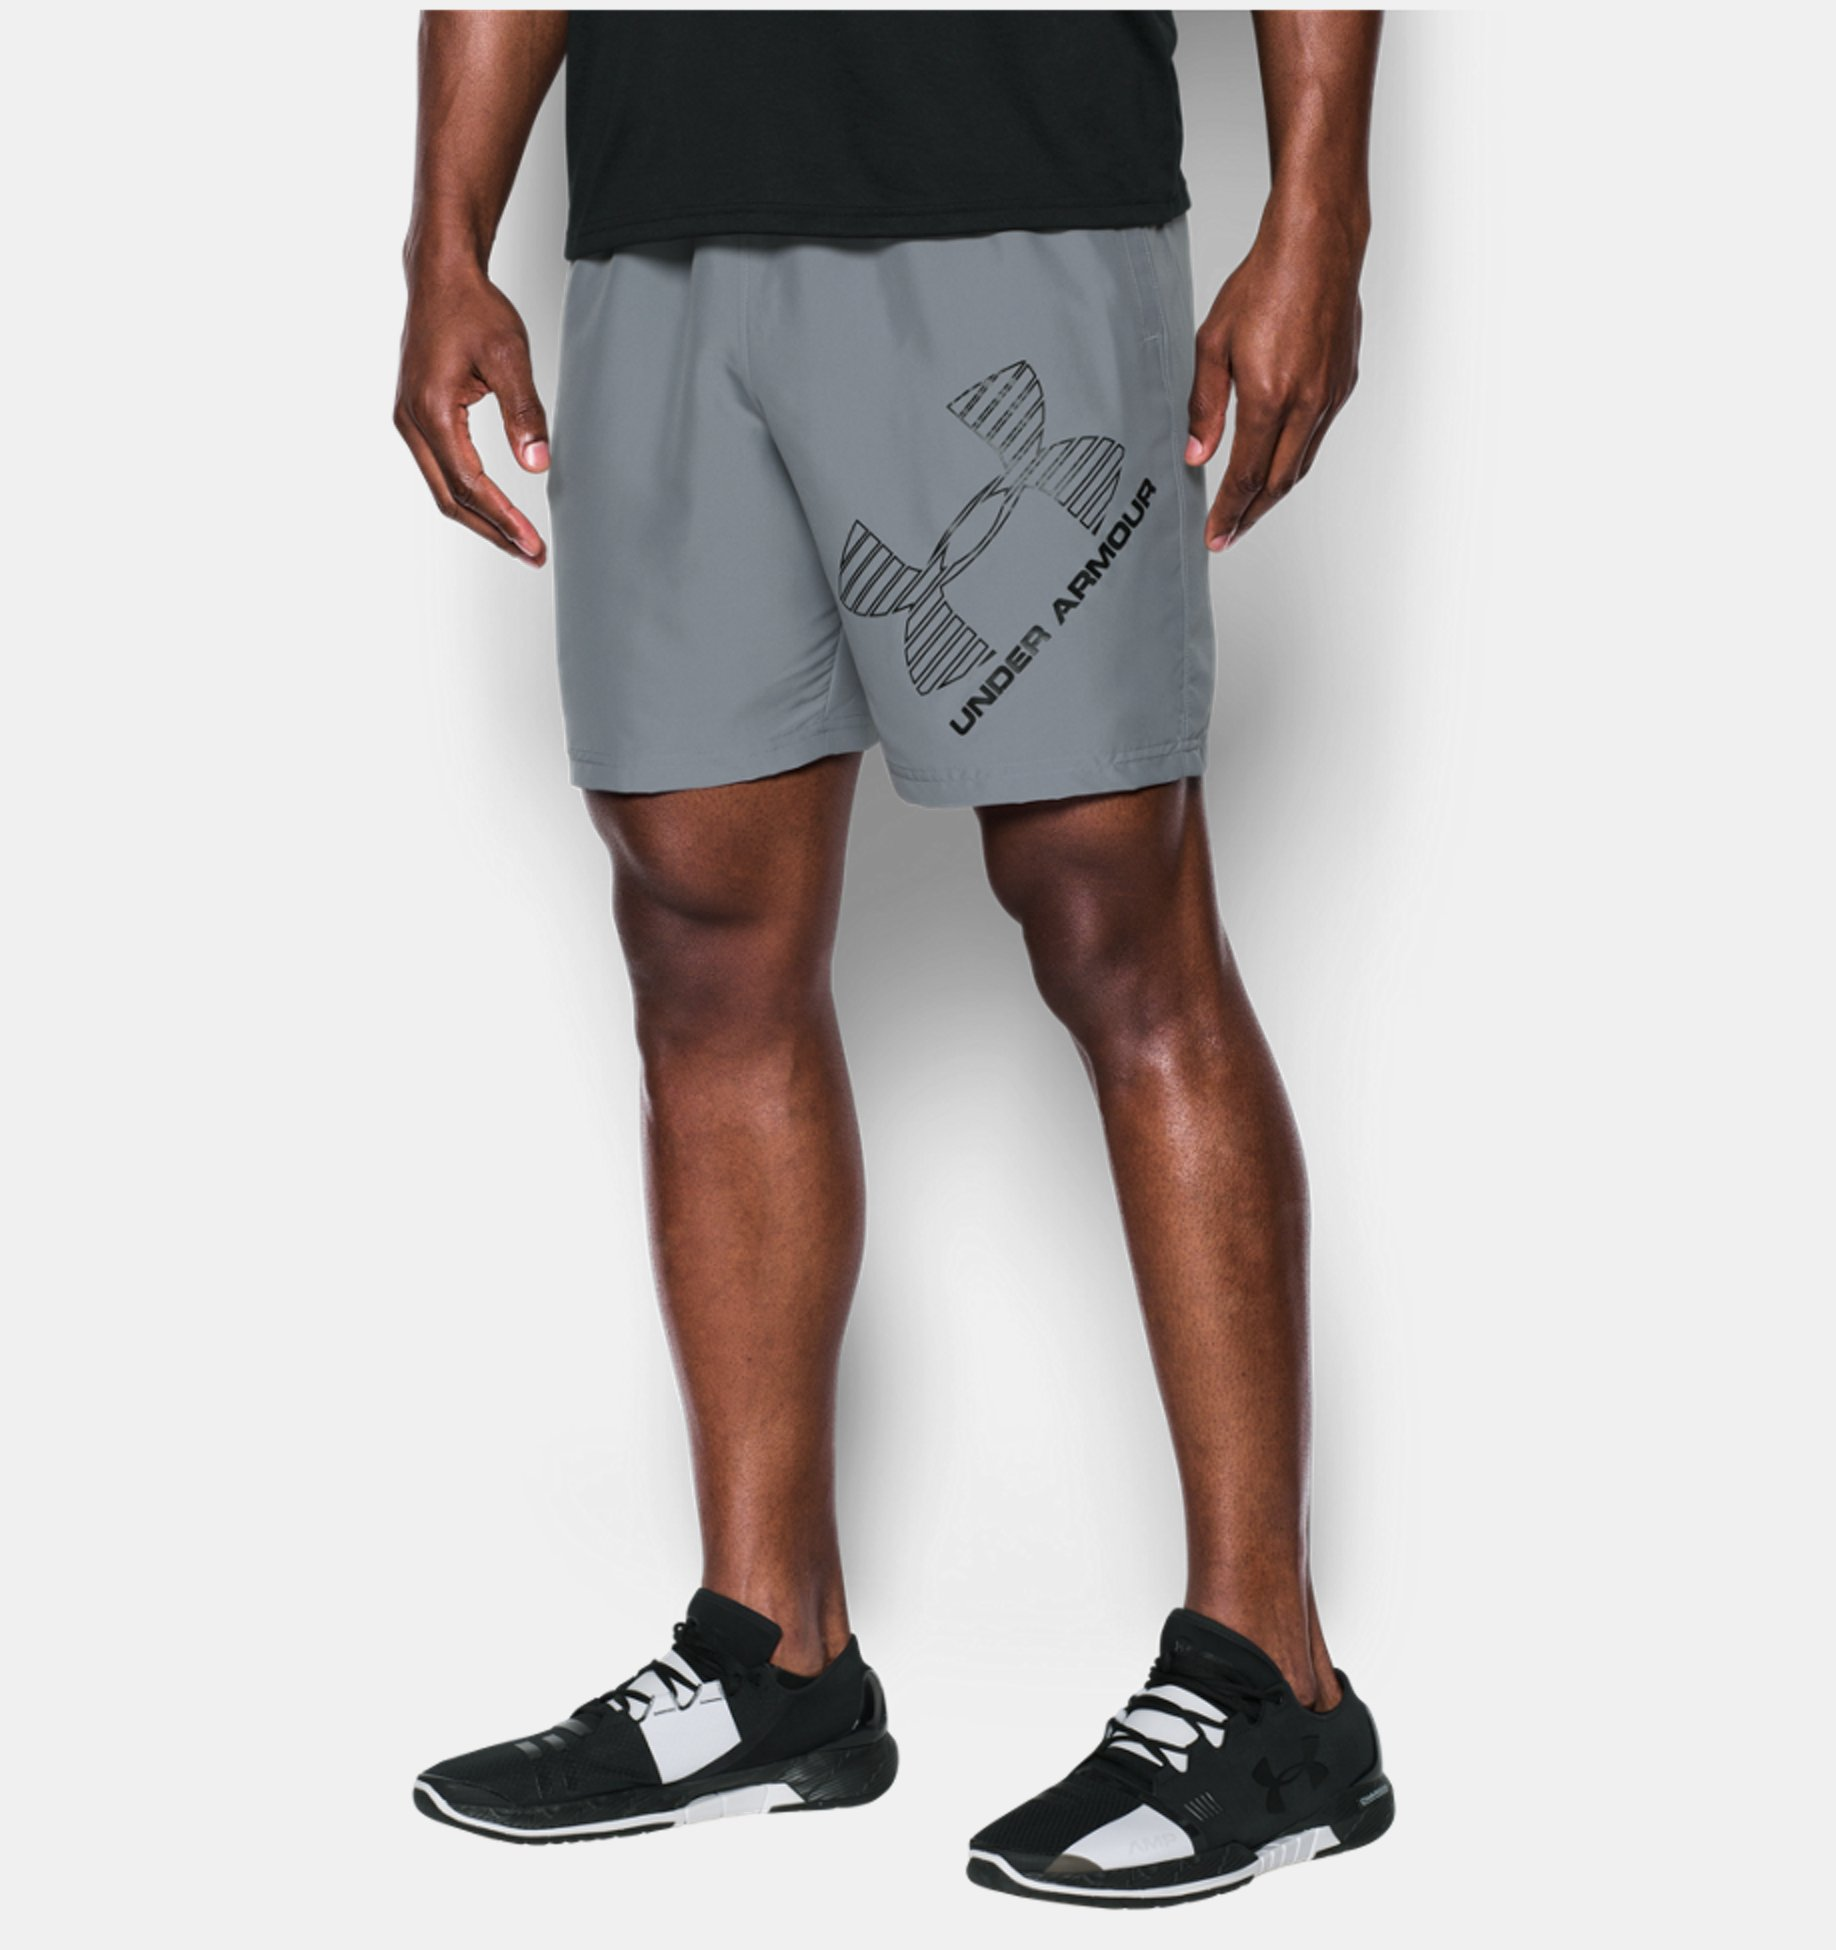 Kraťasy Under Armour Graphik Woven Shorts sivé